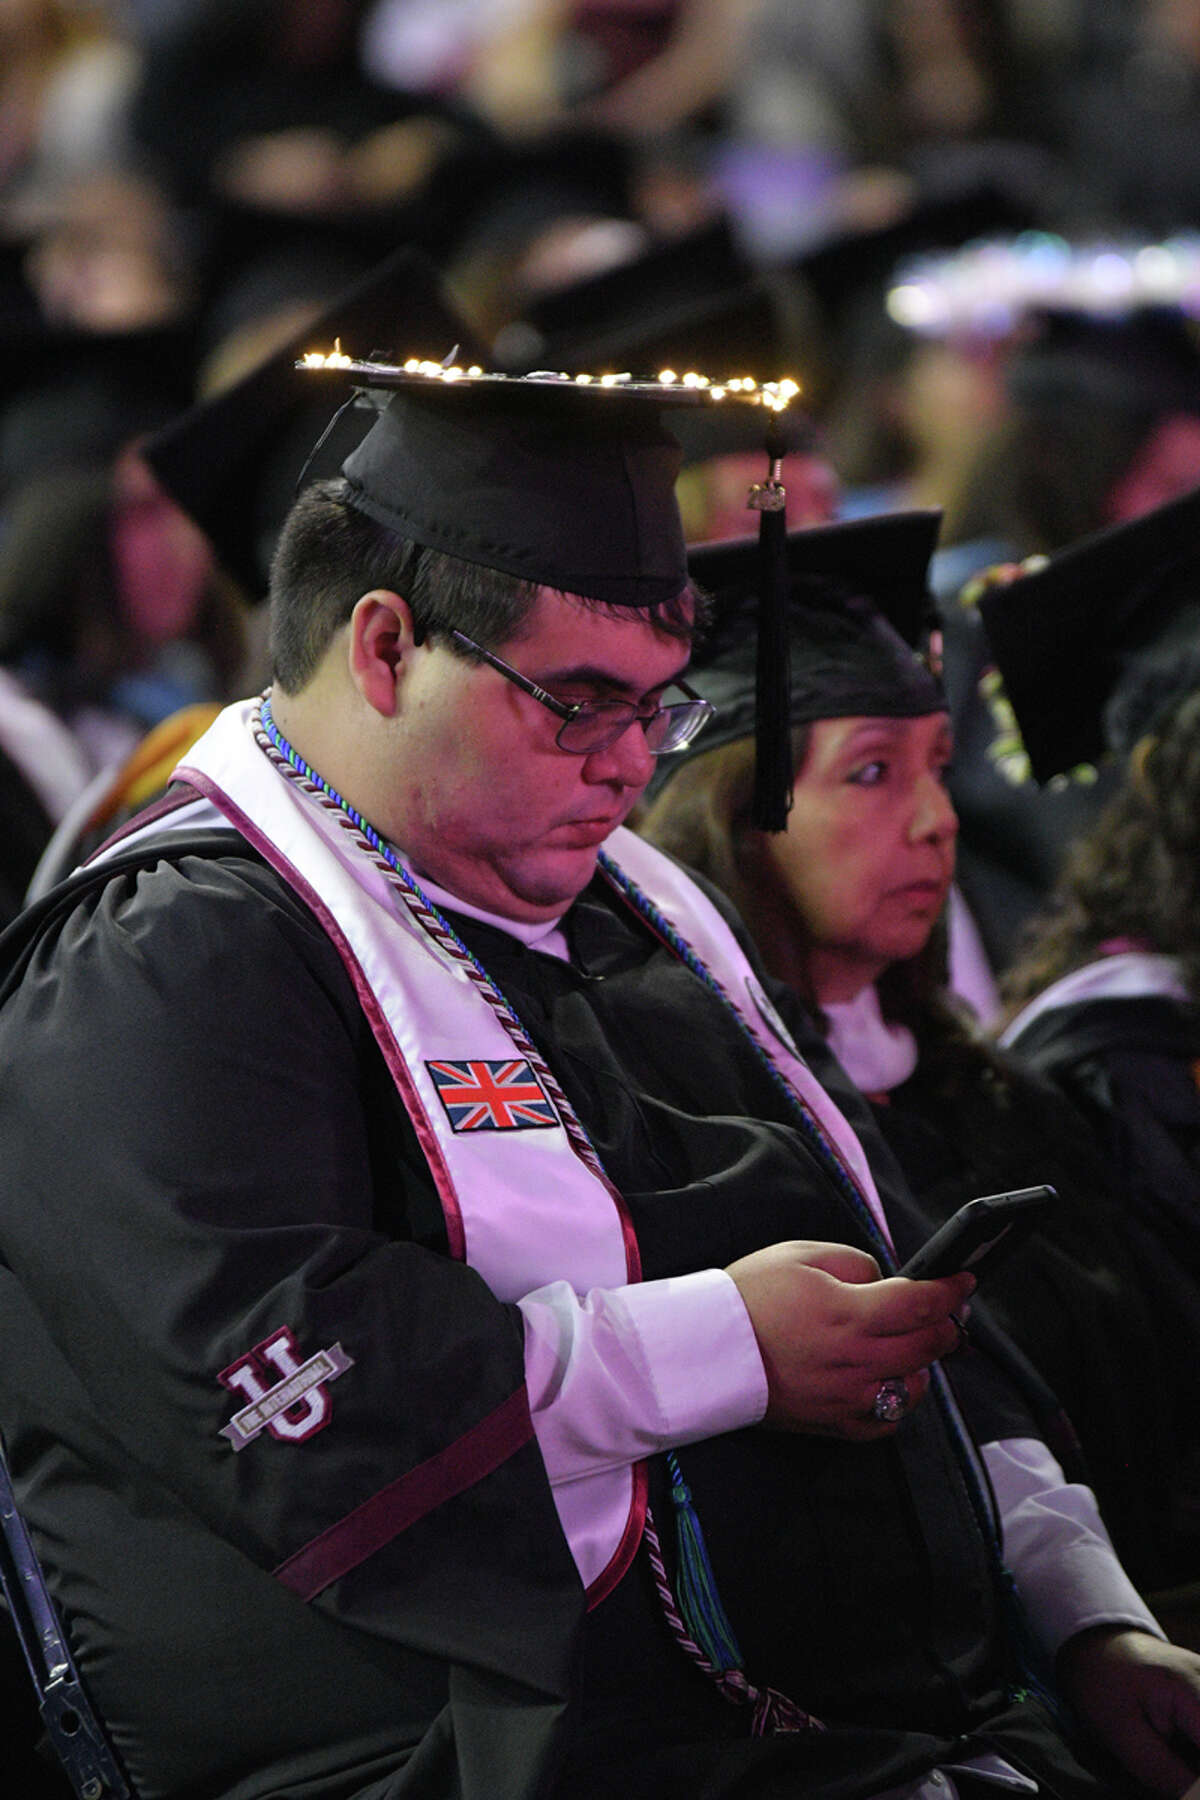 Over 800 candidates for graduation from Texas A&M International University participated in the Summer and Fall 2019 Commencement Exercises at the Sames Auto Arena.